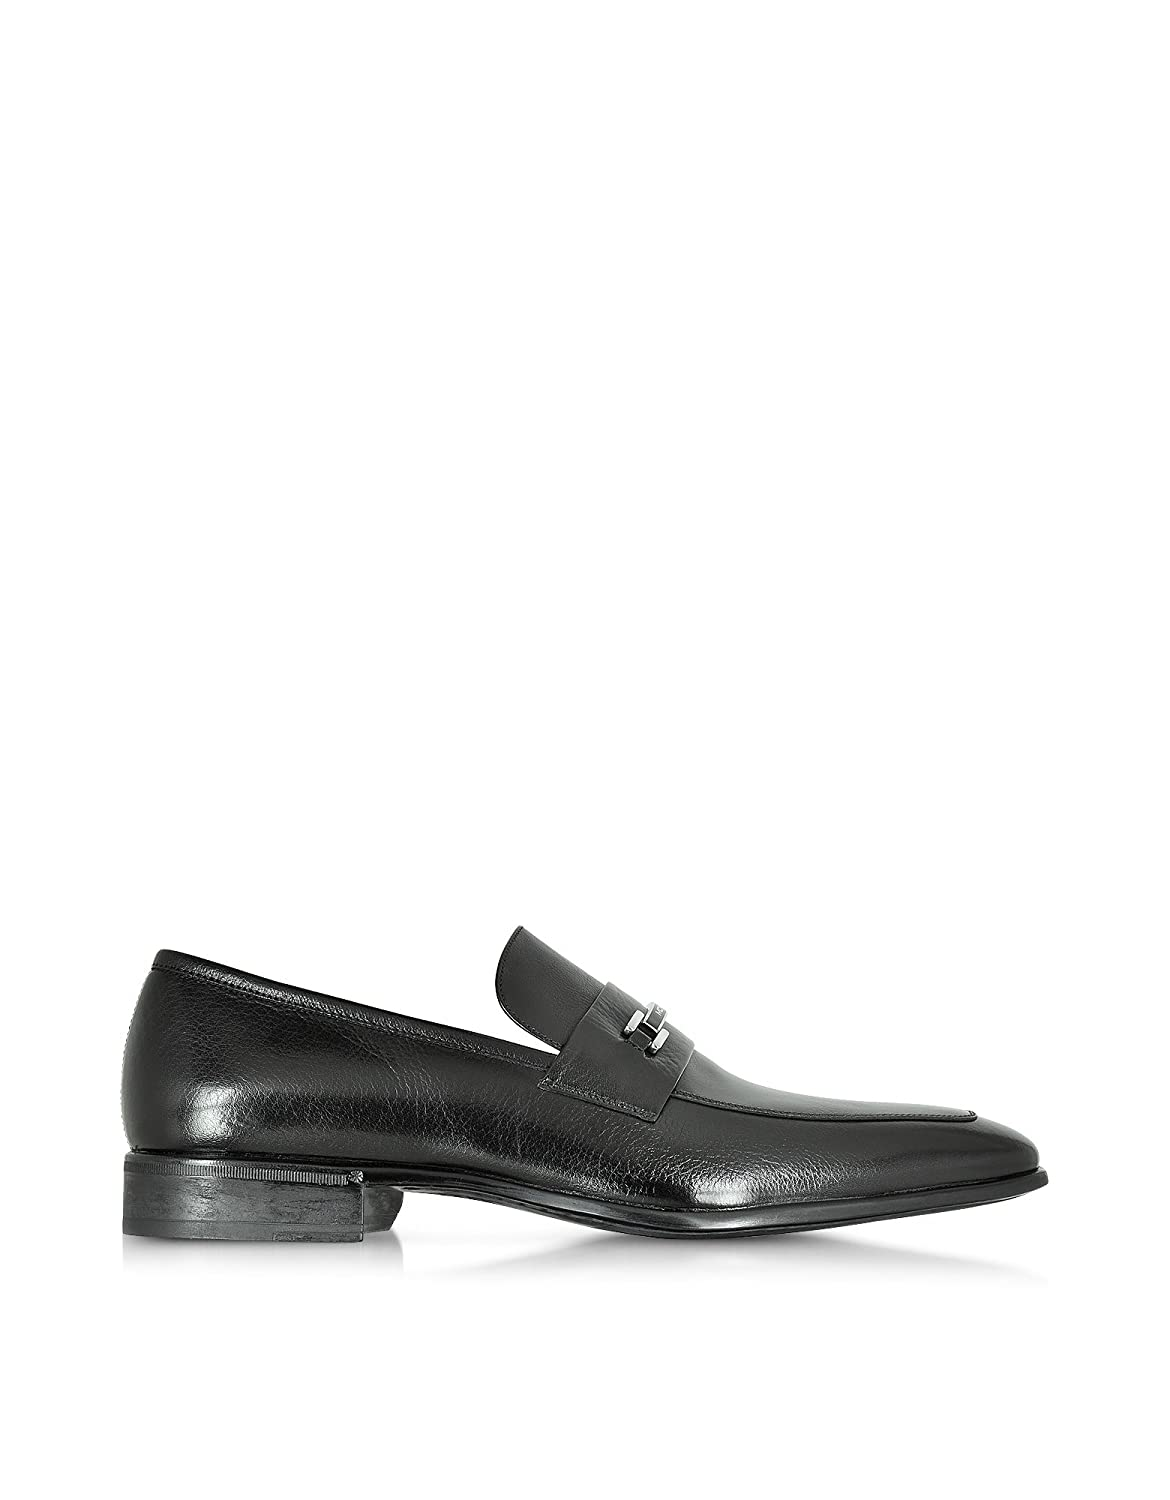 MORESCHI MEN'S 41490MQBLACK BLACK LEATHER LOAFERS